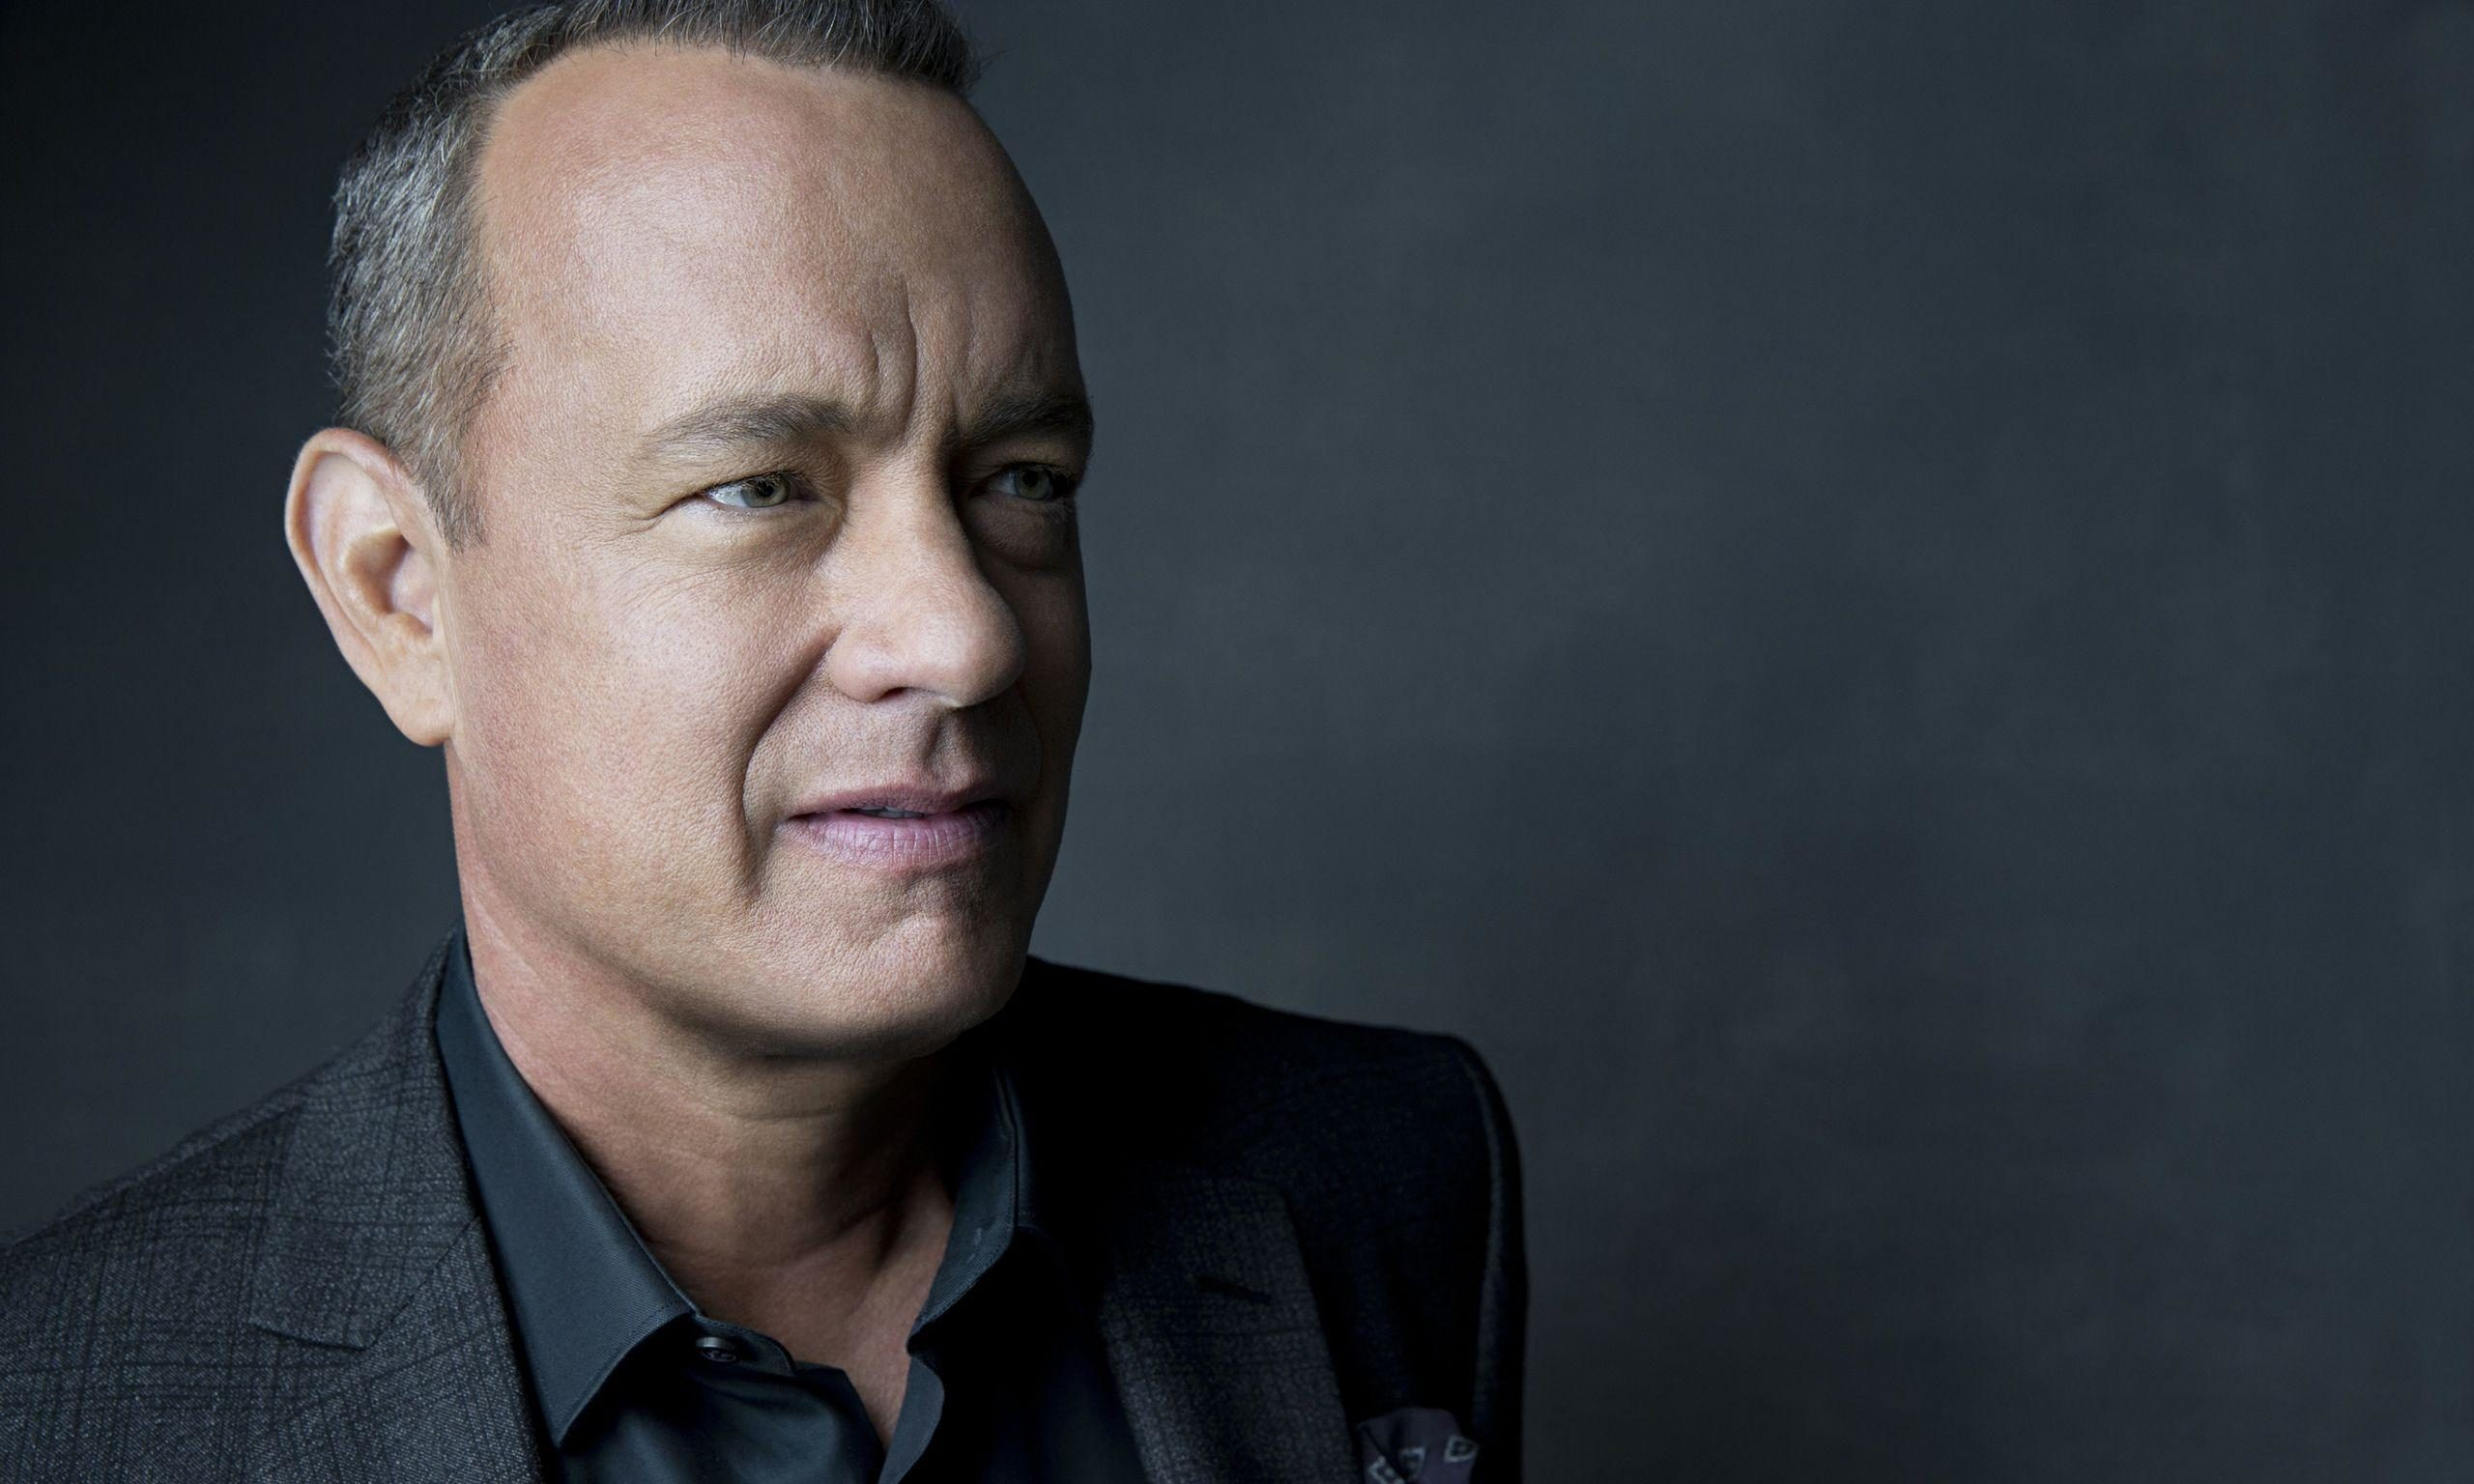 Tom Hanks Background Wallpapers for iPad